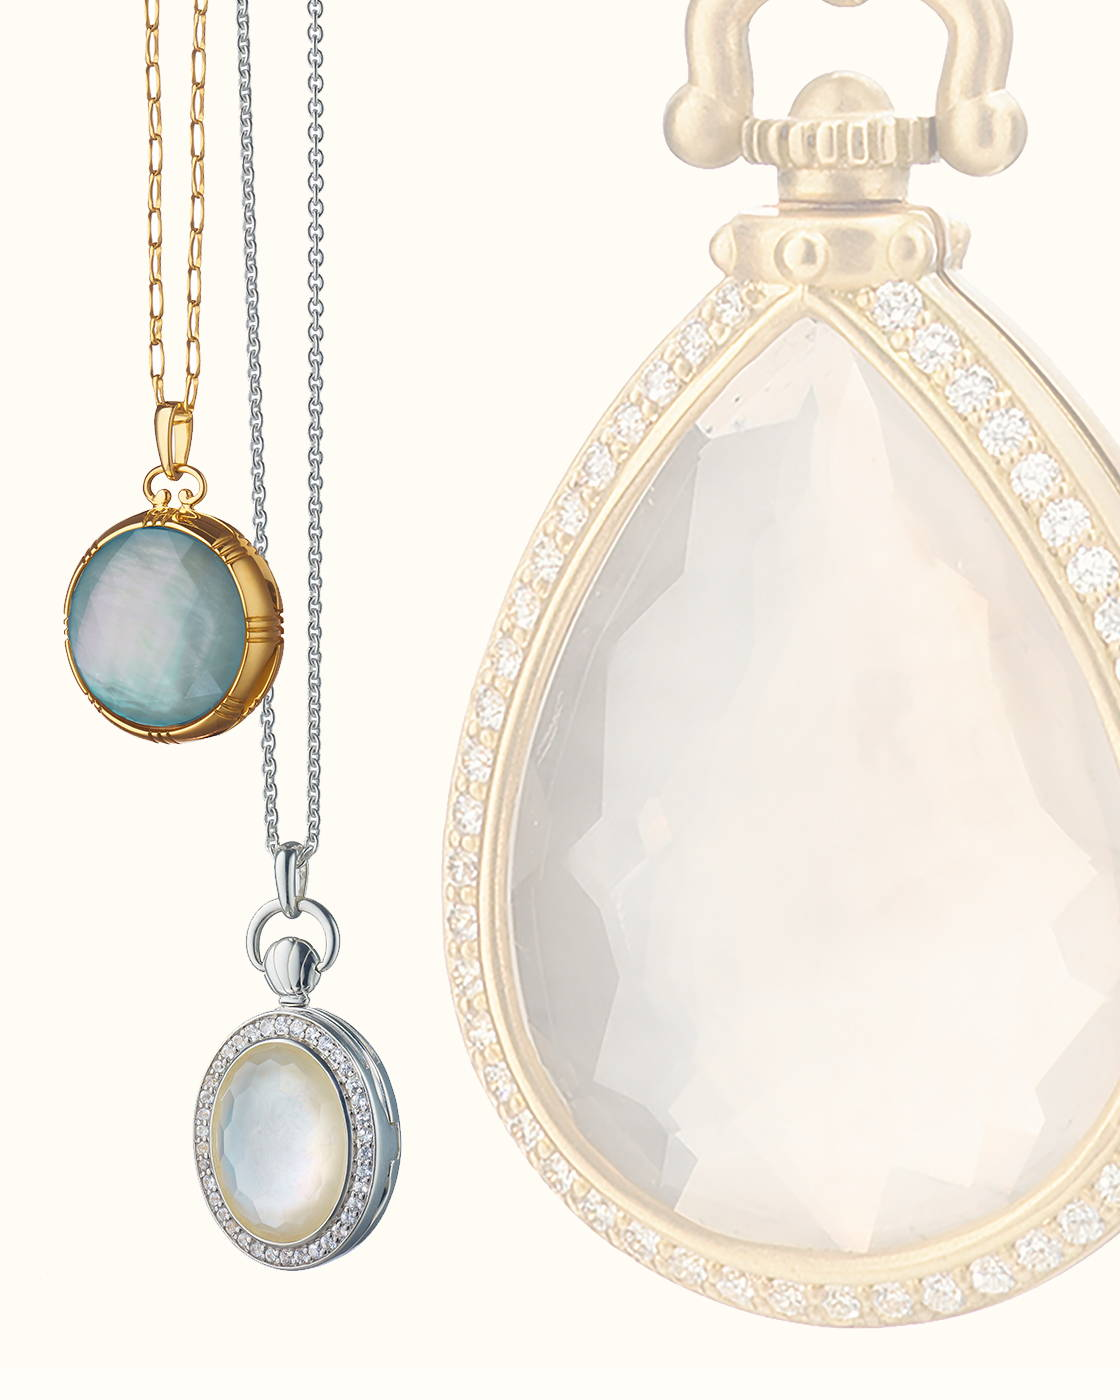 The Stone Locket Collection